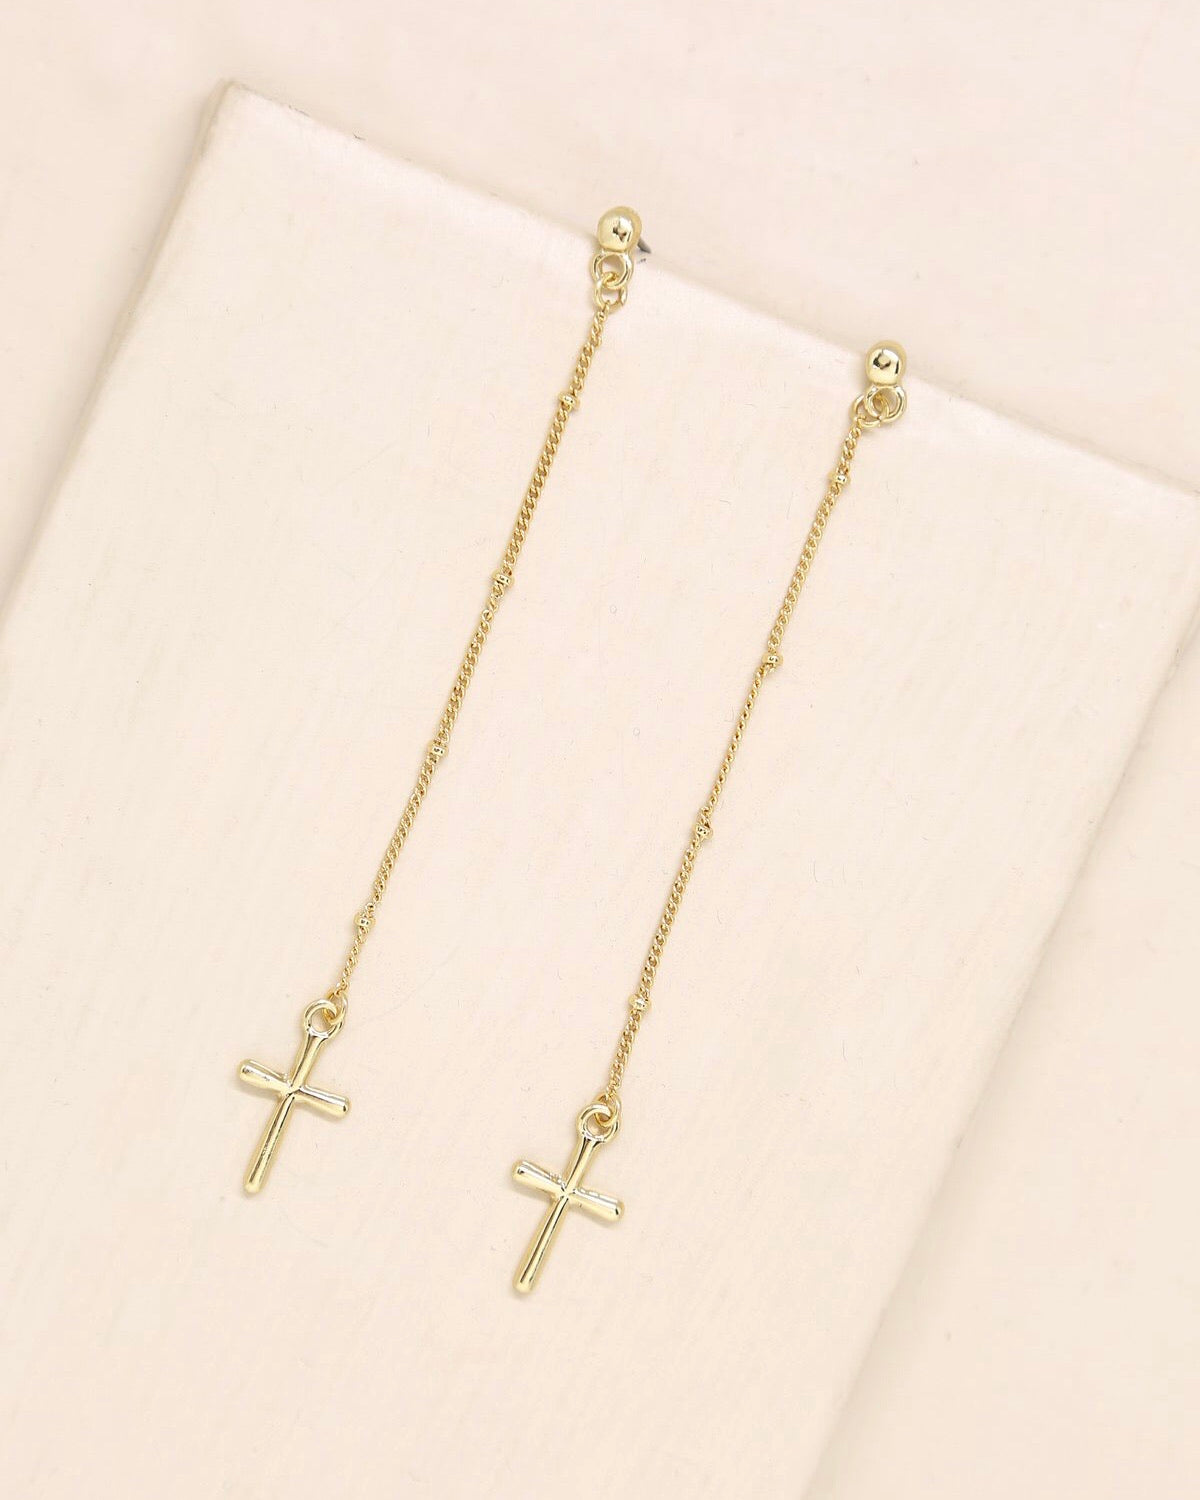 CHANCE & FAITH earrings [gold]